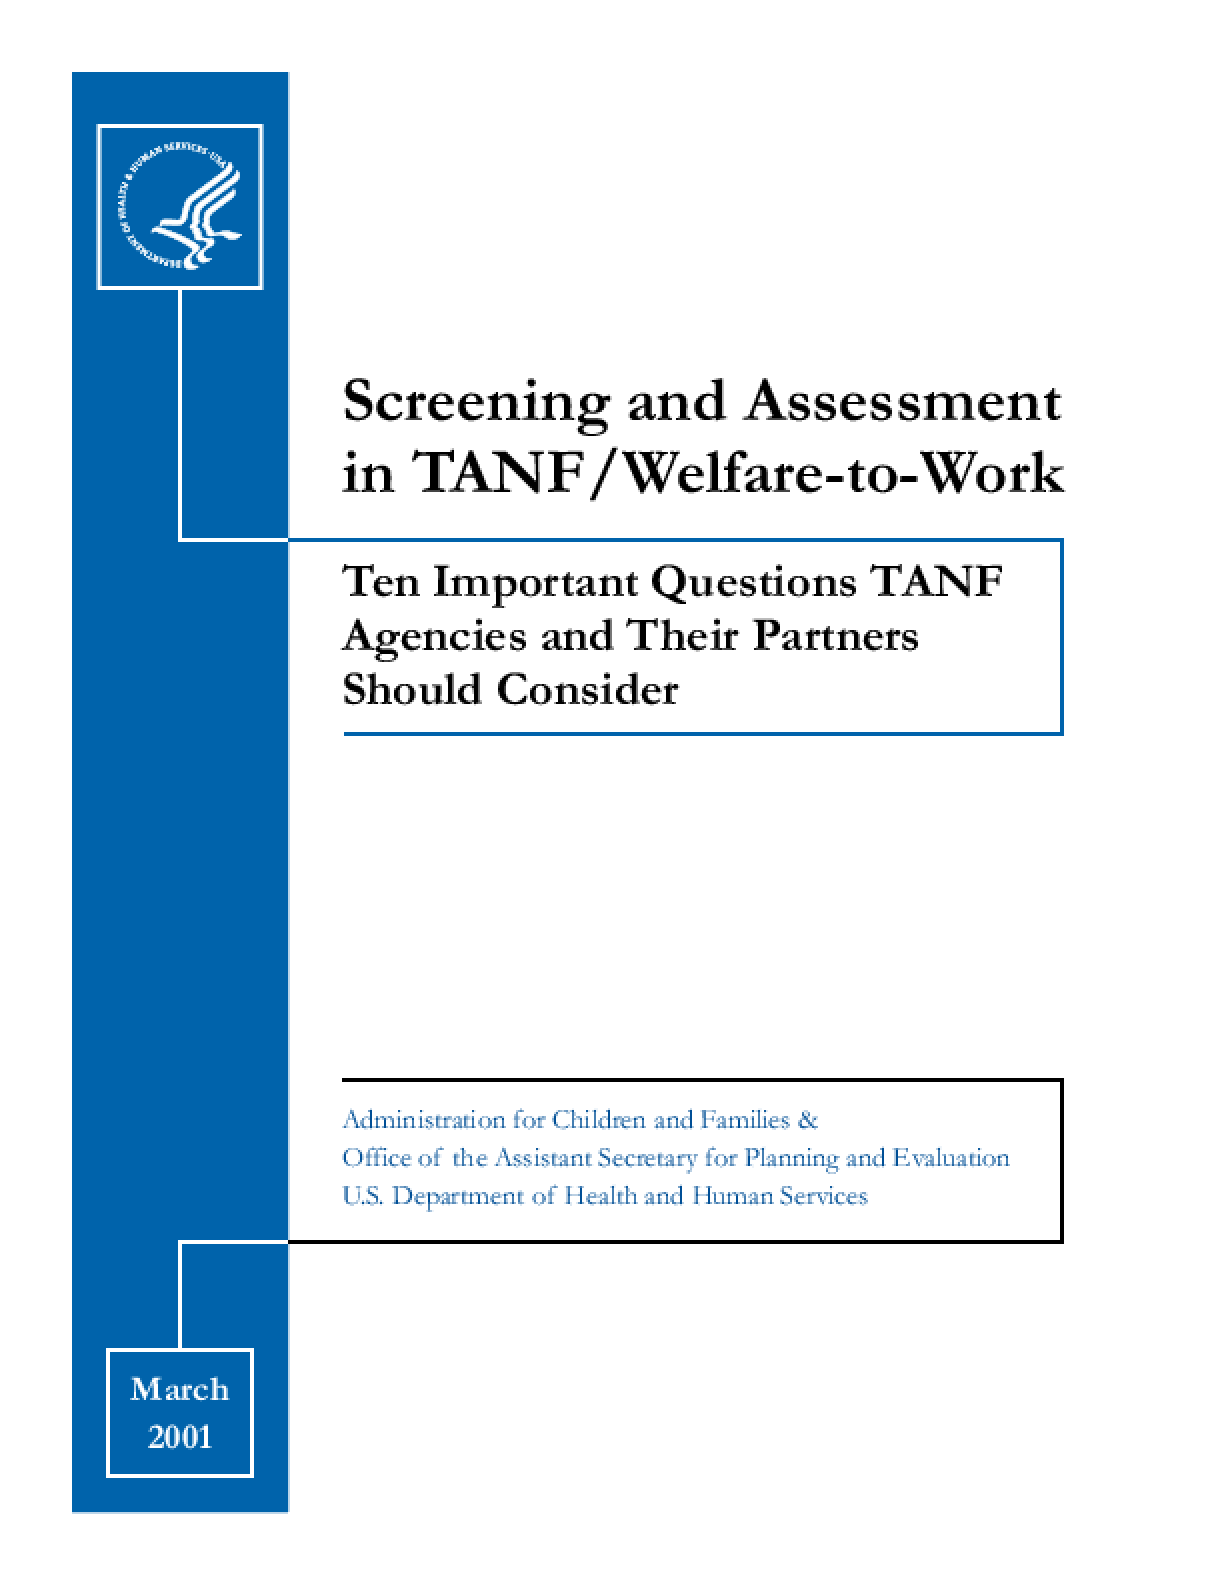 Screening and Assessment in TANF/Welfare-to-Work: Ten Important Questions TANF Agencies and Their Partners Should Consider